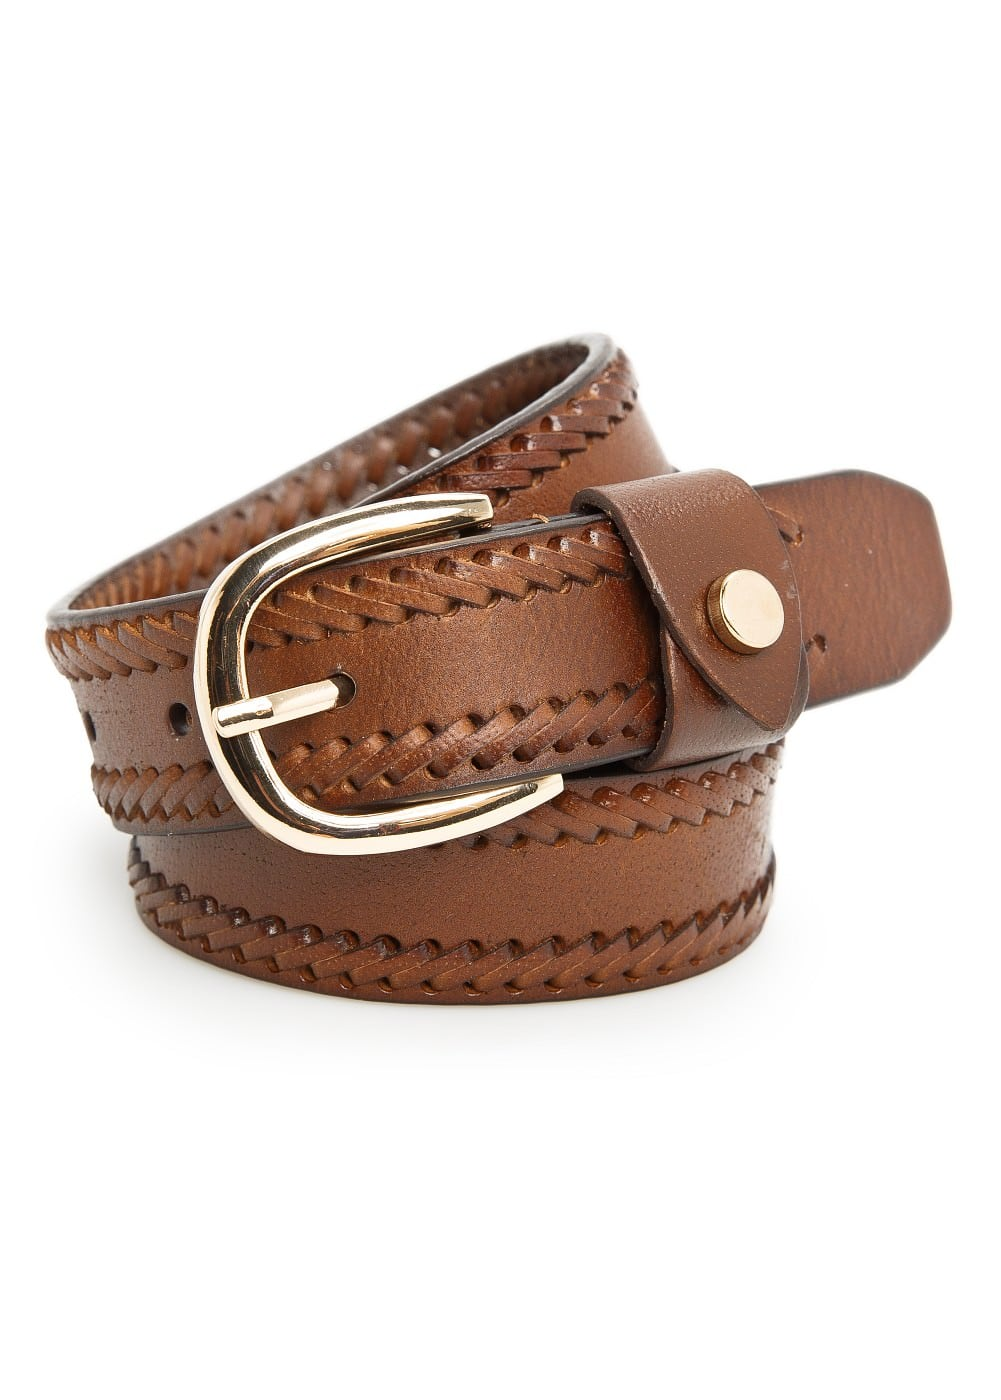 Leather stitch belt